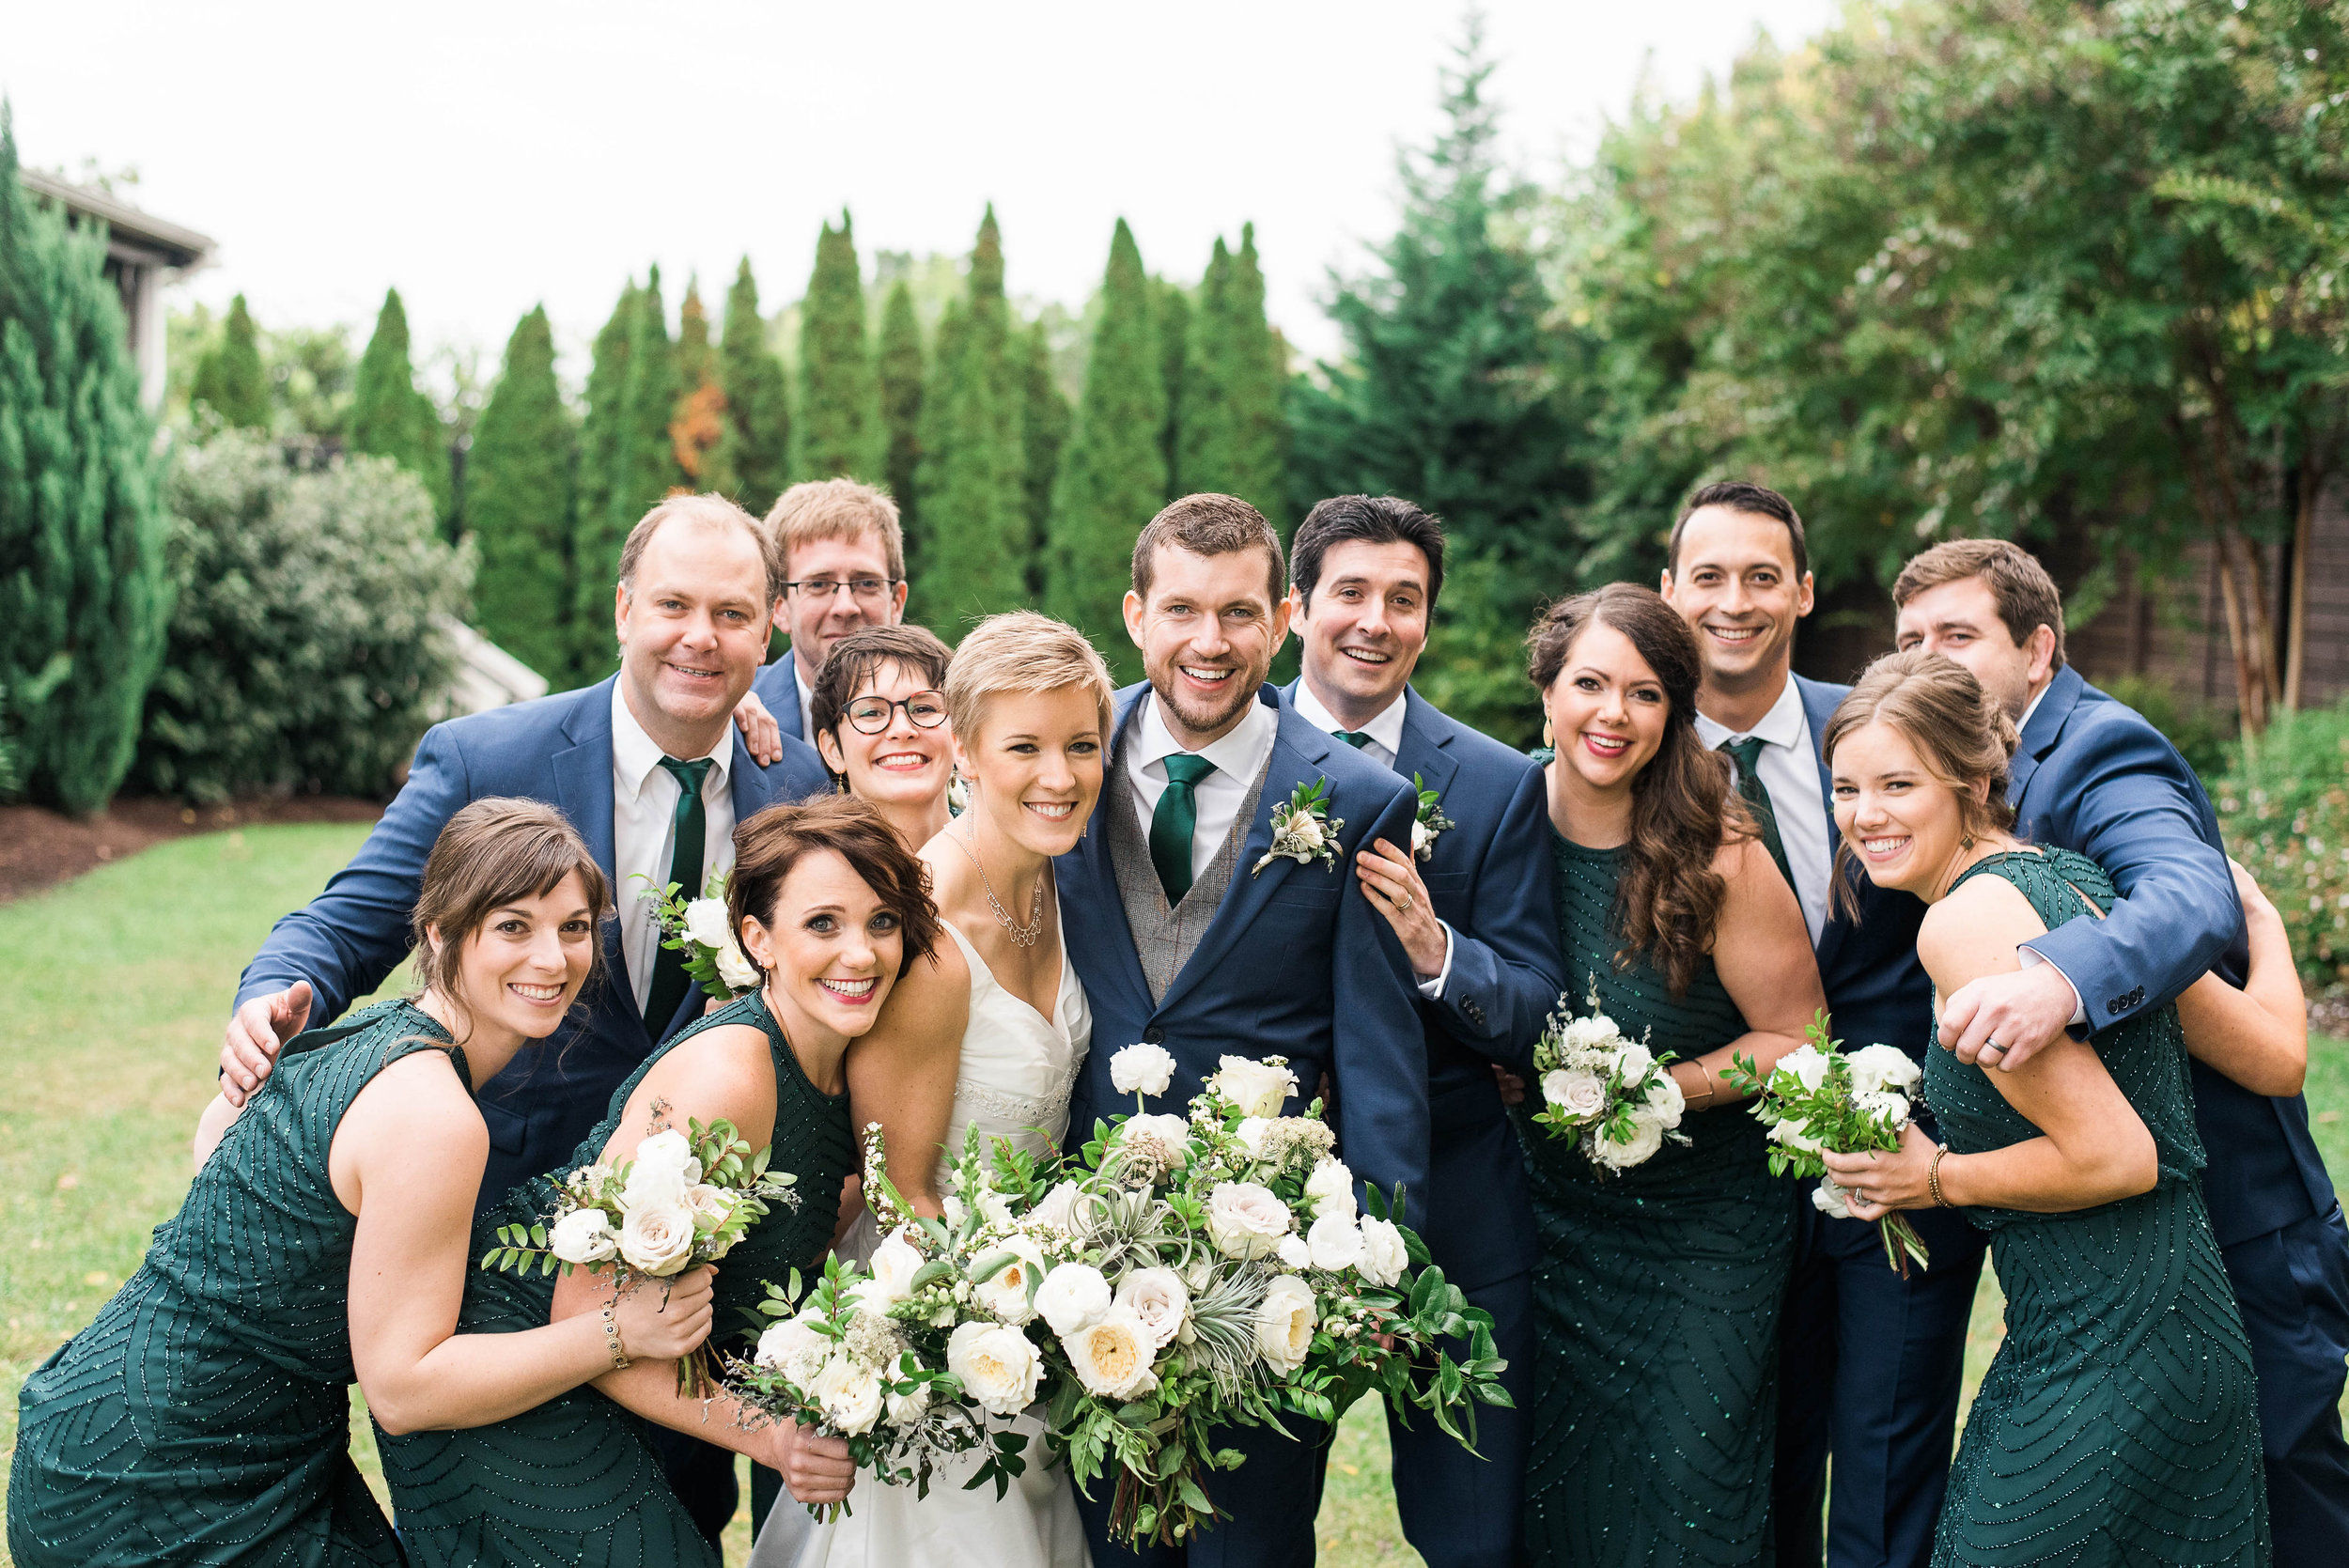 Emerald bridesmaid dresses with white and neutral bouquets // Nashville Wedding Flowers